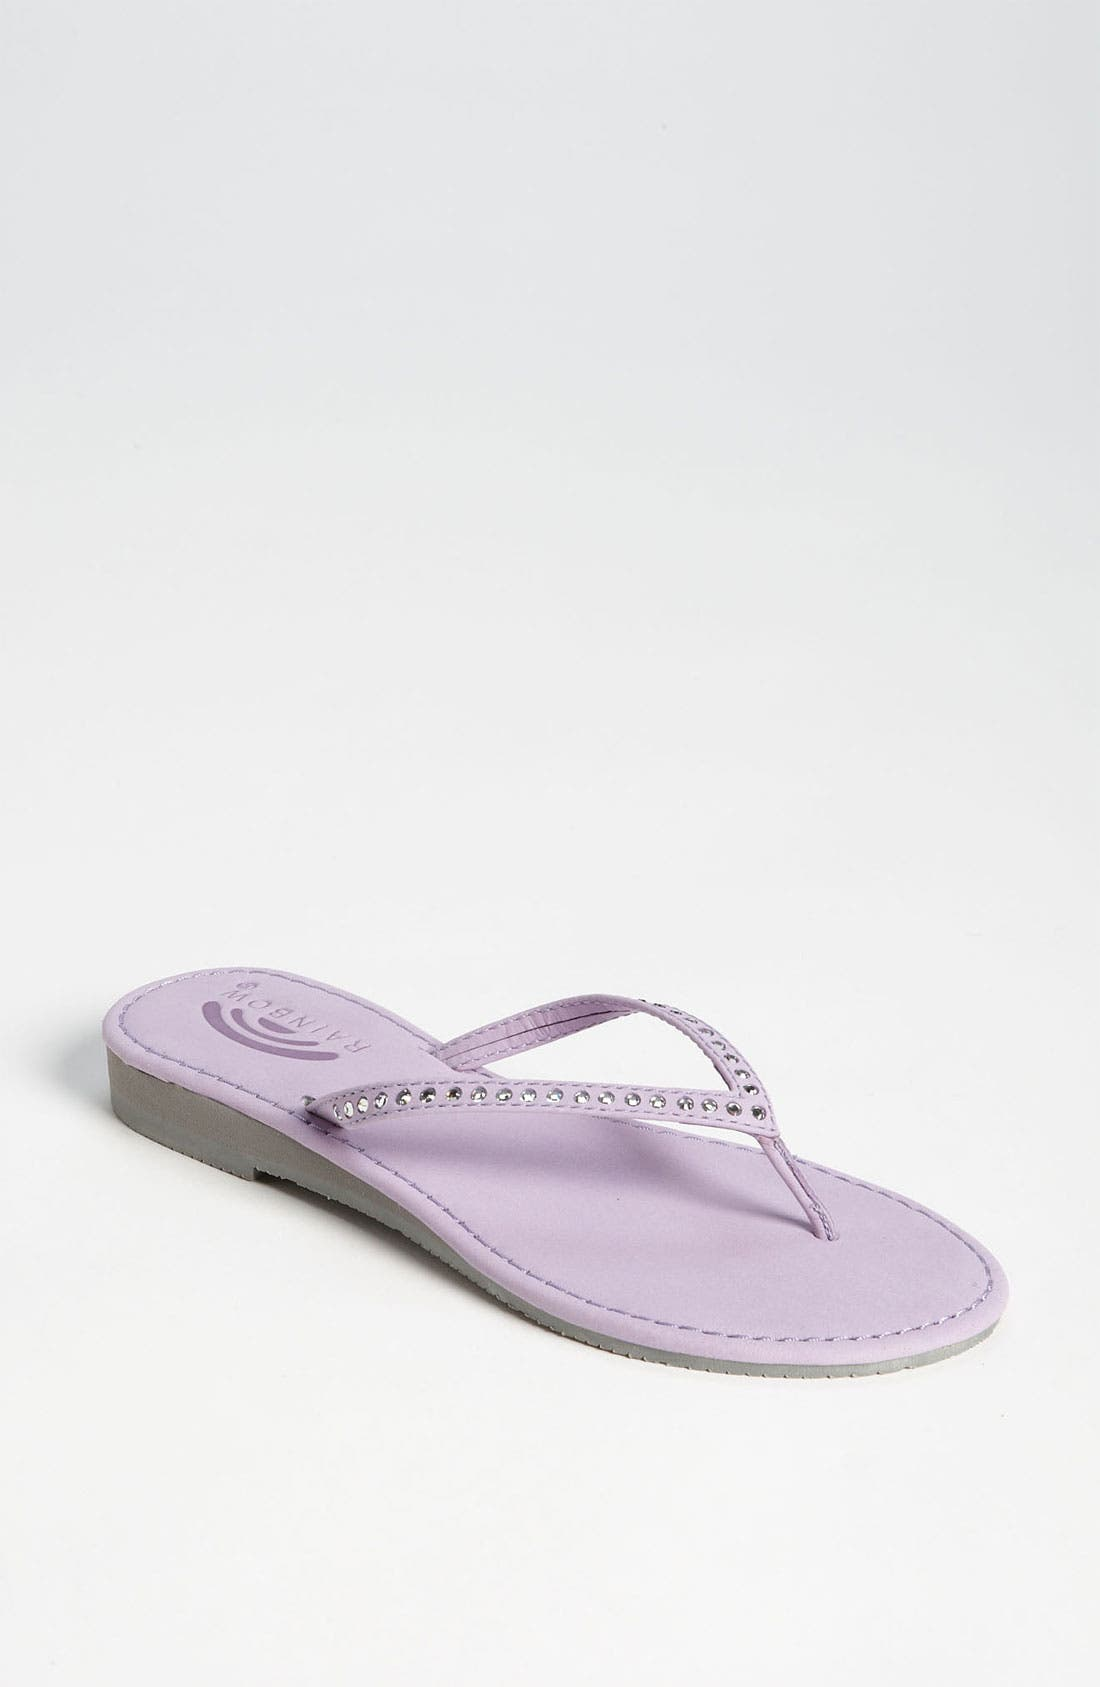 Alternate Image 1 Selected - Rainbow 'Lola' Flip Flop (Women)